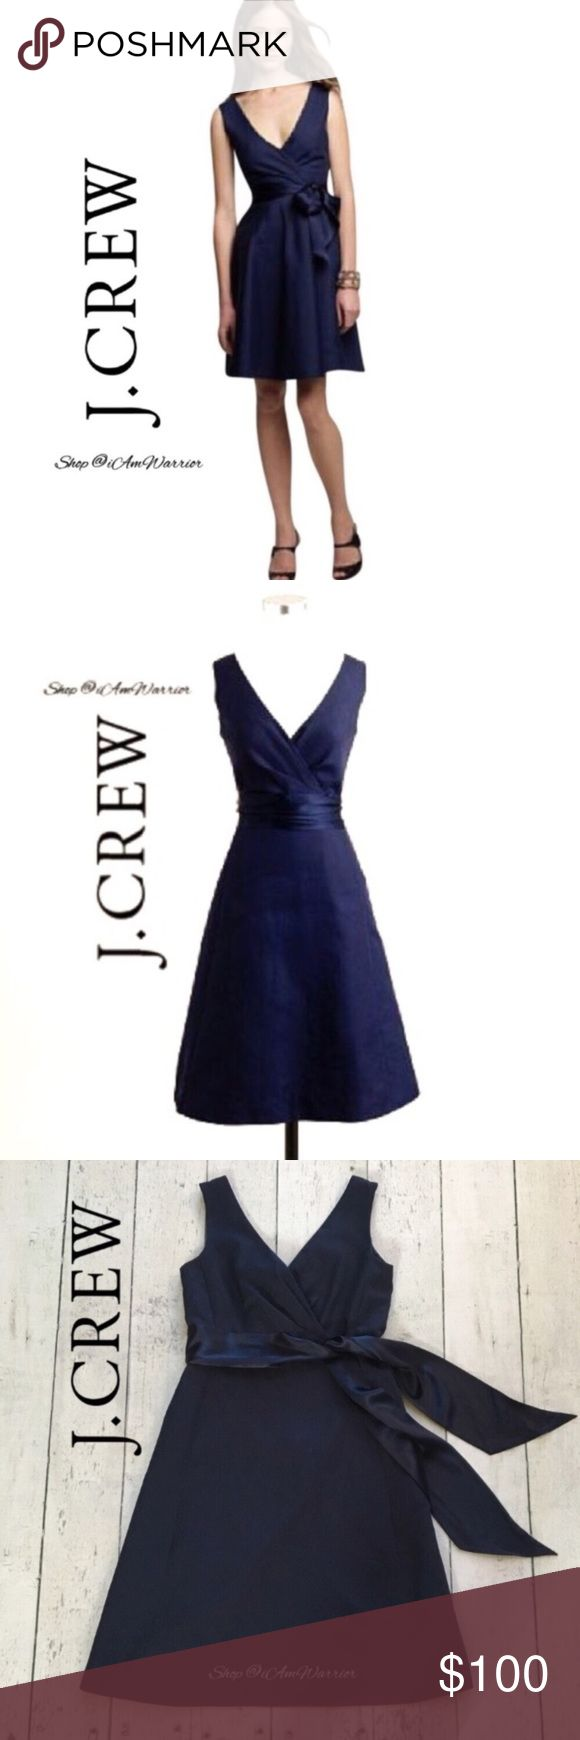 "J. Crew navy Serena cotton cady belted dress Classic and elegant J. Crew fully lined navy blue sleeveless crisp cotton cady dress with satin tie belt. Can tie in back or in front. V-beck/surplice neckline, A-line silhouette. Approx 38"" long. Excellent condition, smoke free home. Please read my bio regarding closet policies prior to any inquiries. J. Crew Dresses"